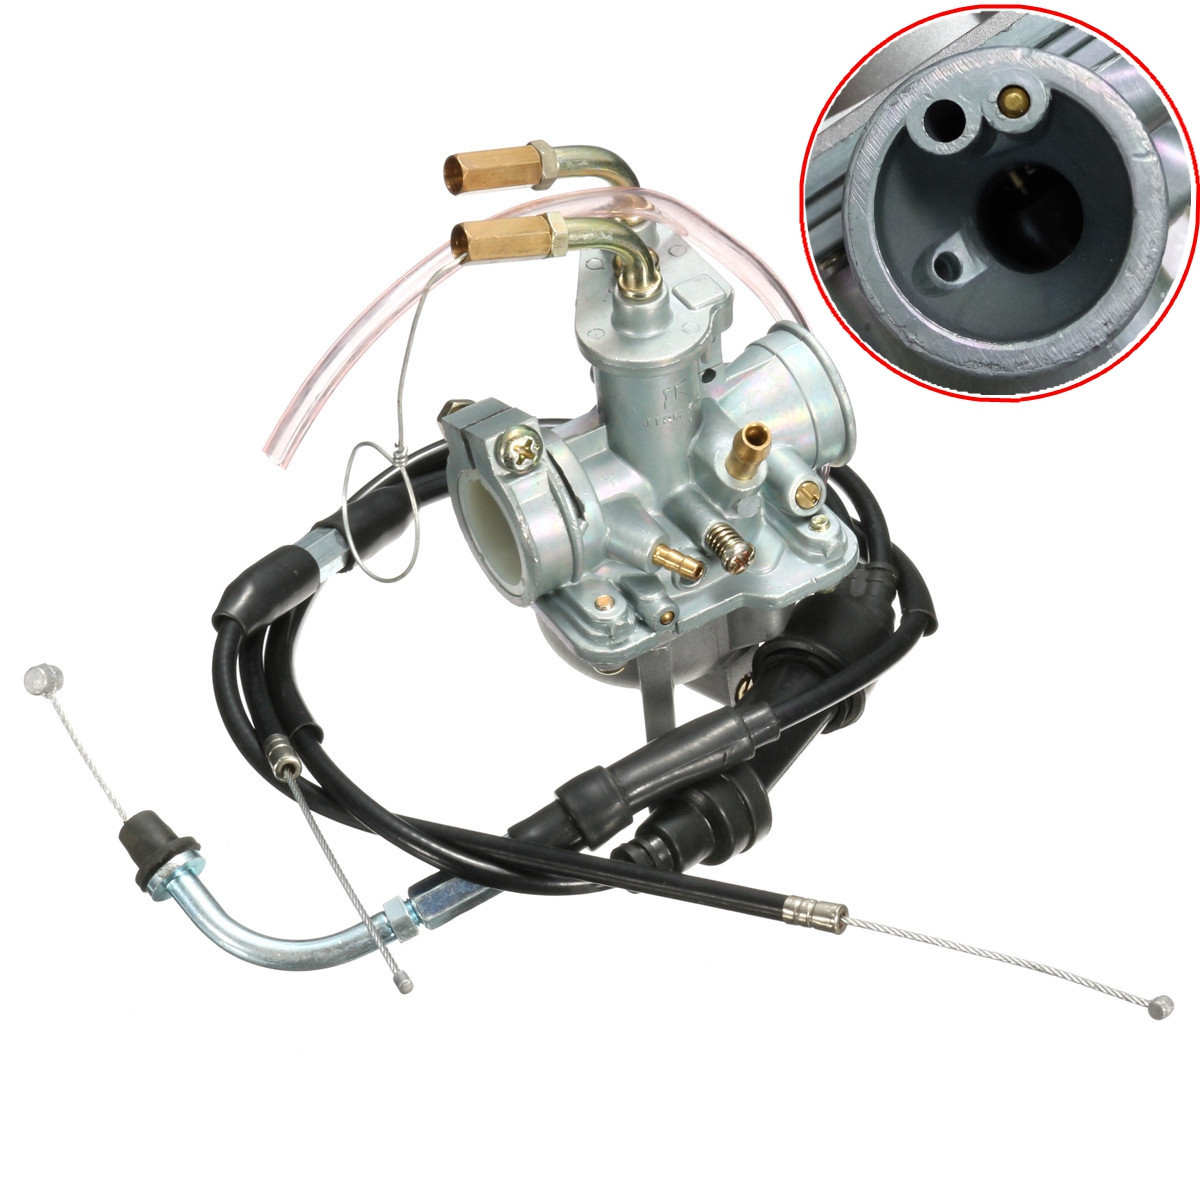 Motorcycle Carb Carburetor With Throttle Cable For Yamaha YF60 QT50 PW50 ATV Quad